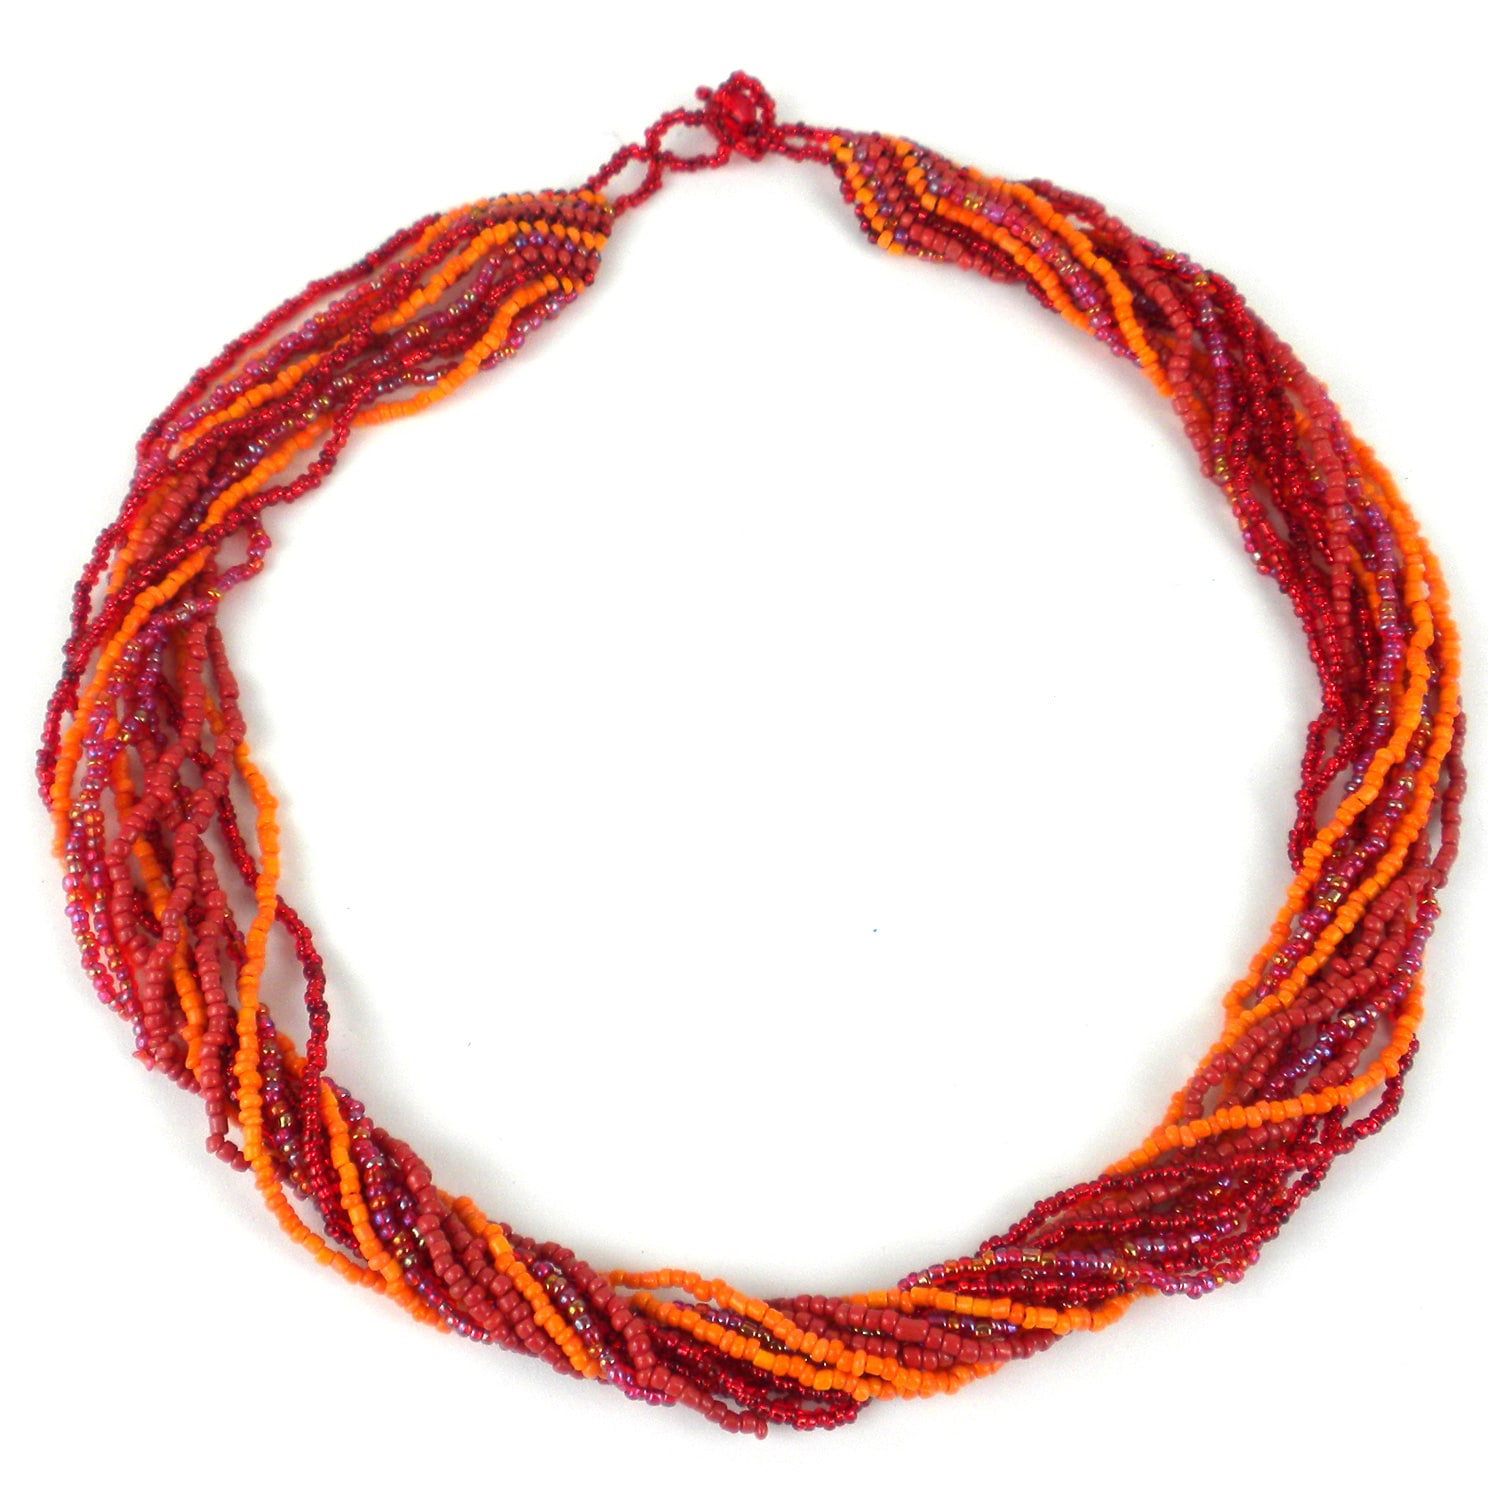 Handcrafted 12-Strand Beaded Necklace - Red & Orange (Guatemala)